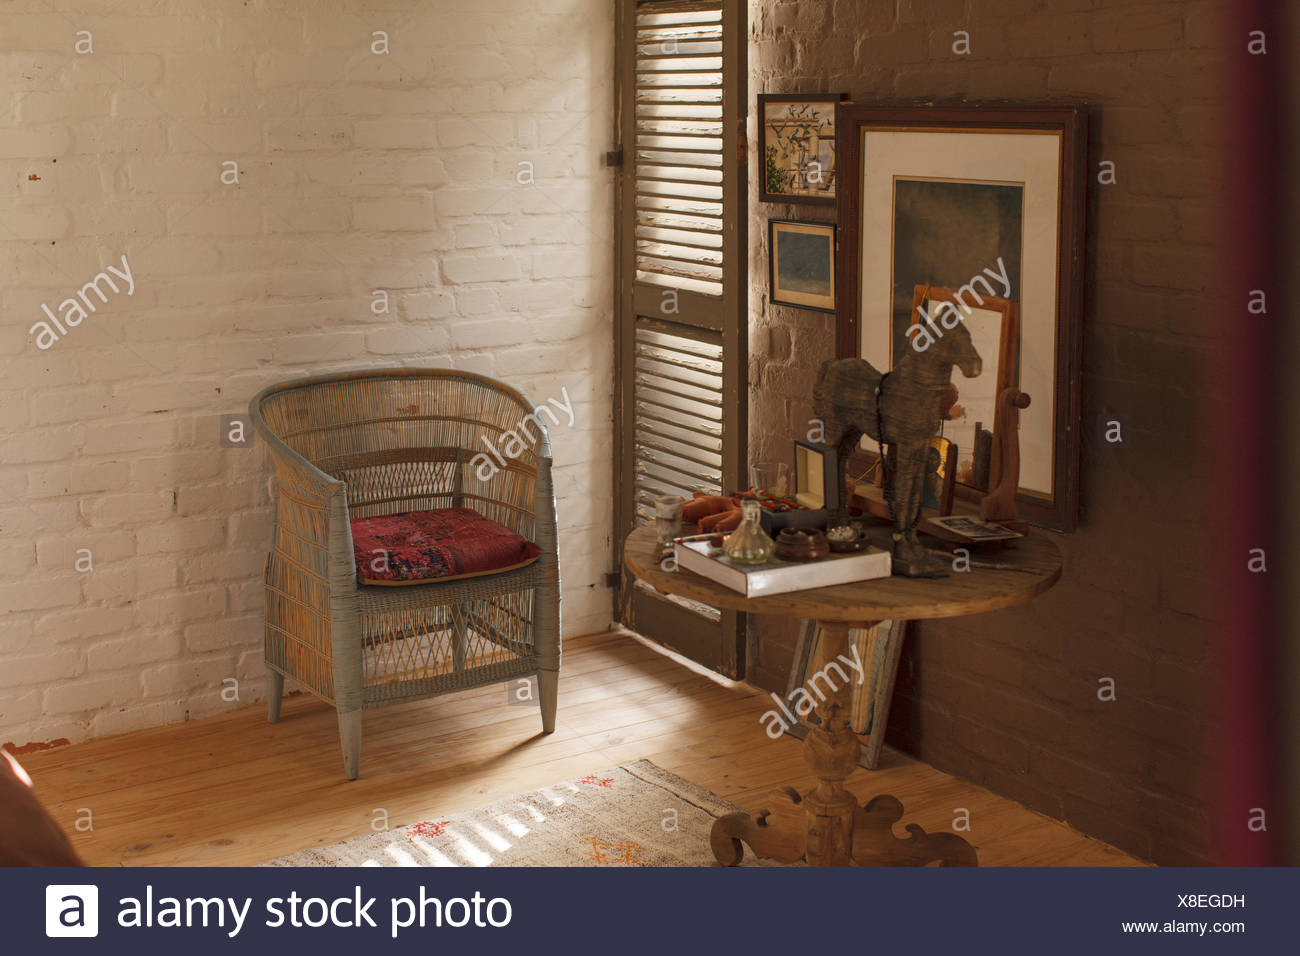 Side table and decorations in rustic bedroom - Stock Image